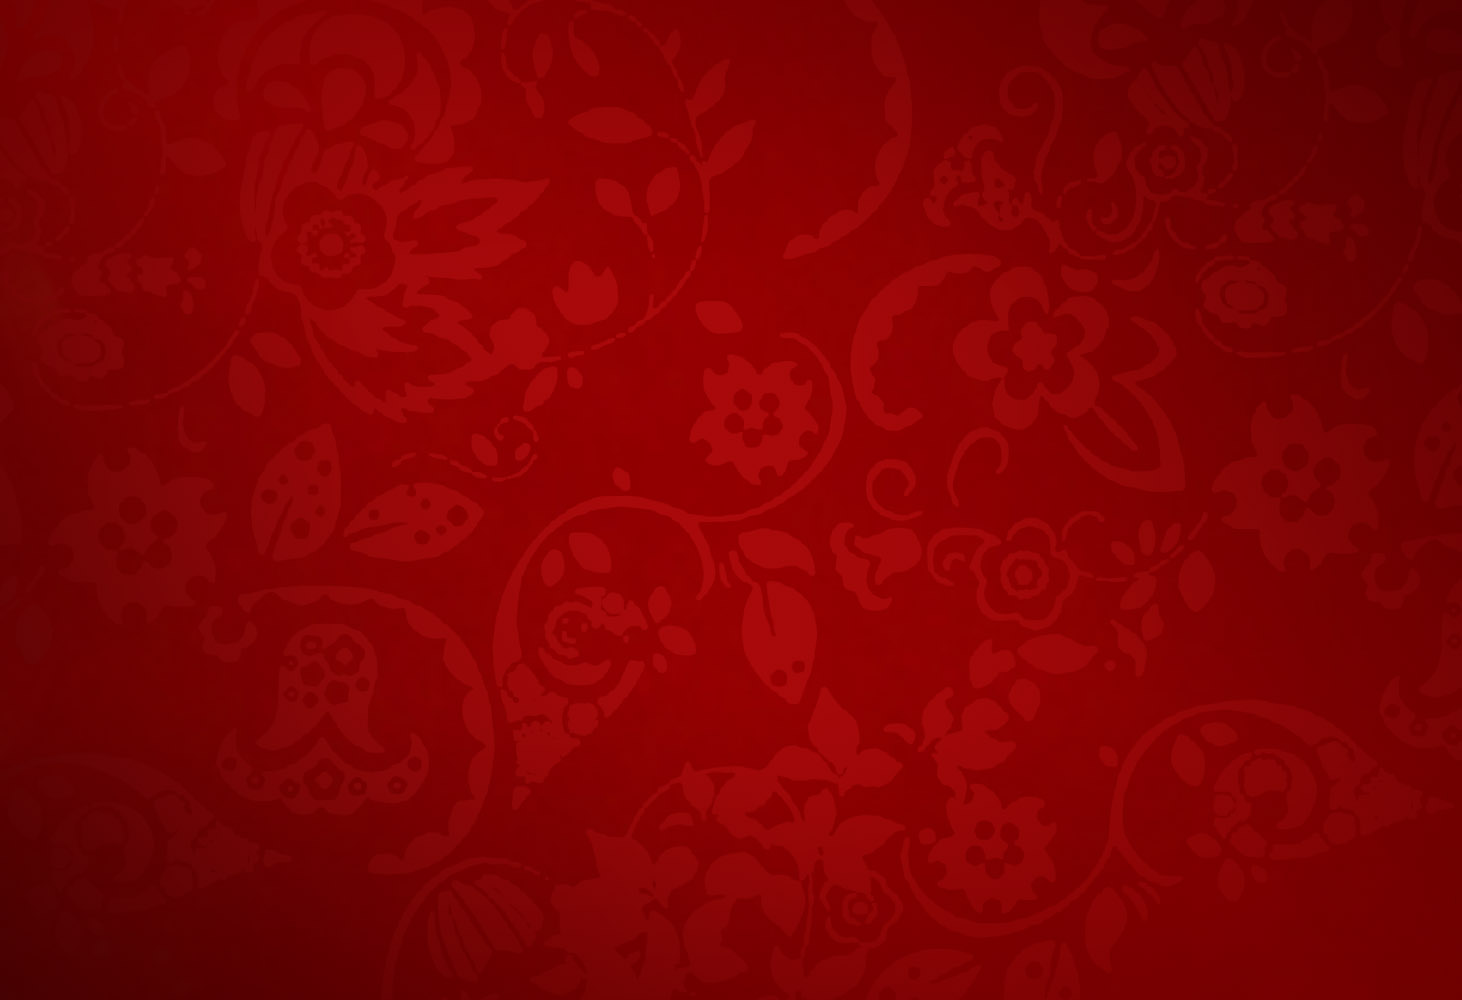 Dark Red Lunar New Year Background Uffbits Red Background For Chinese New Year 1462x1000 Download Hd Wallpaper Wallpapertip